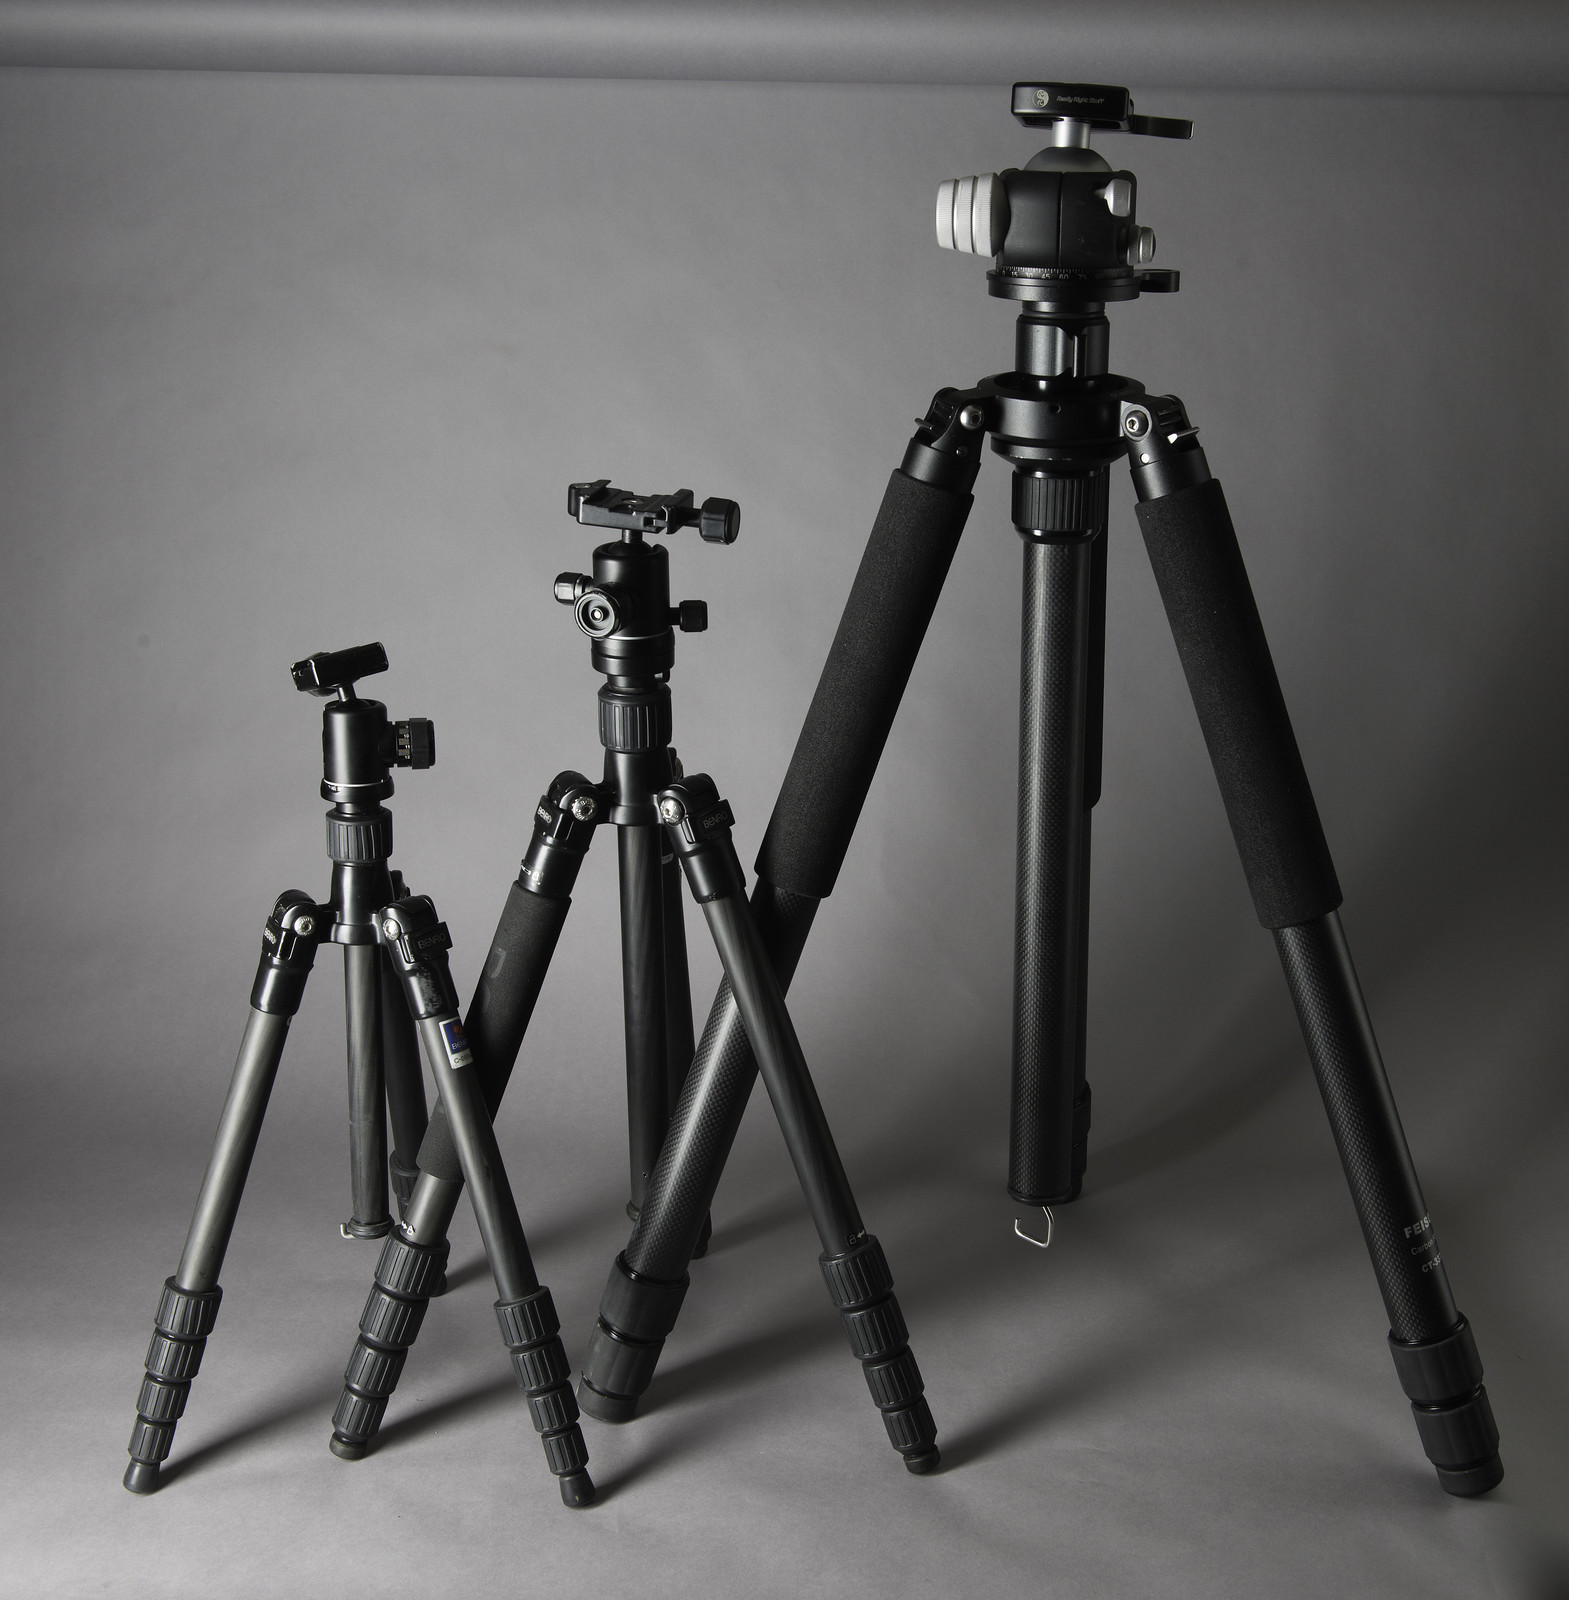 Image result for tripod indoor photography